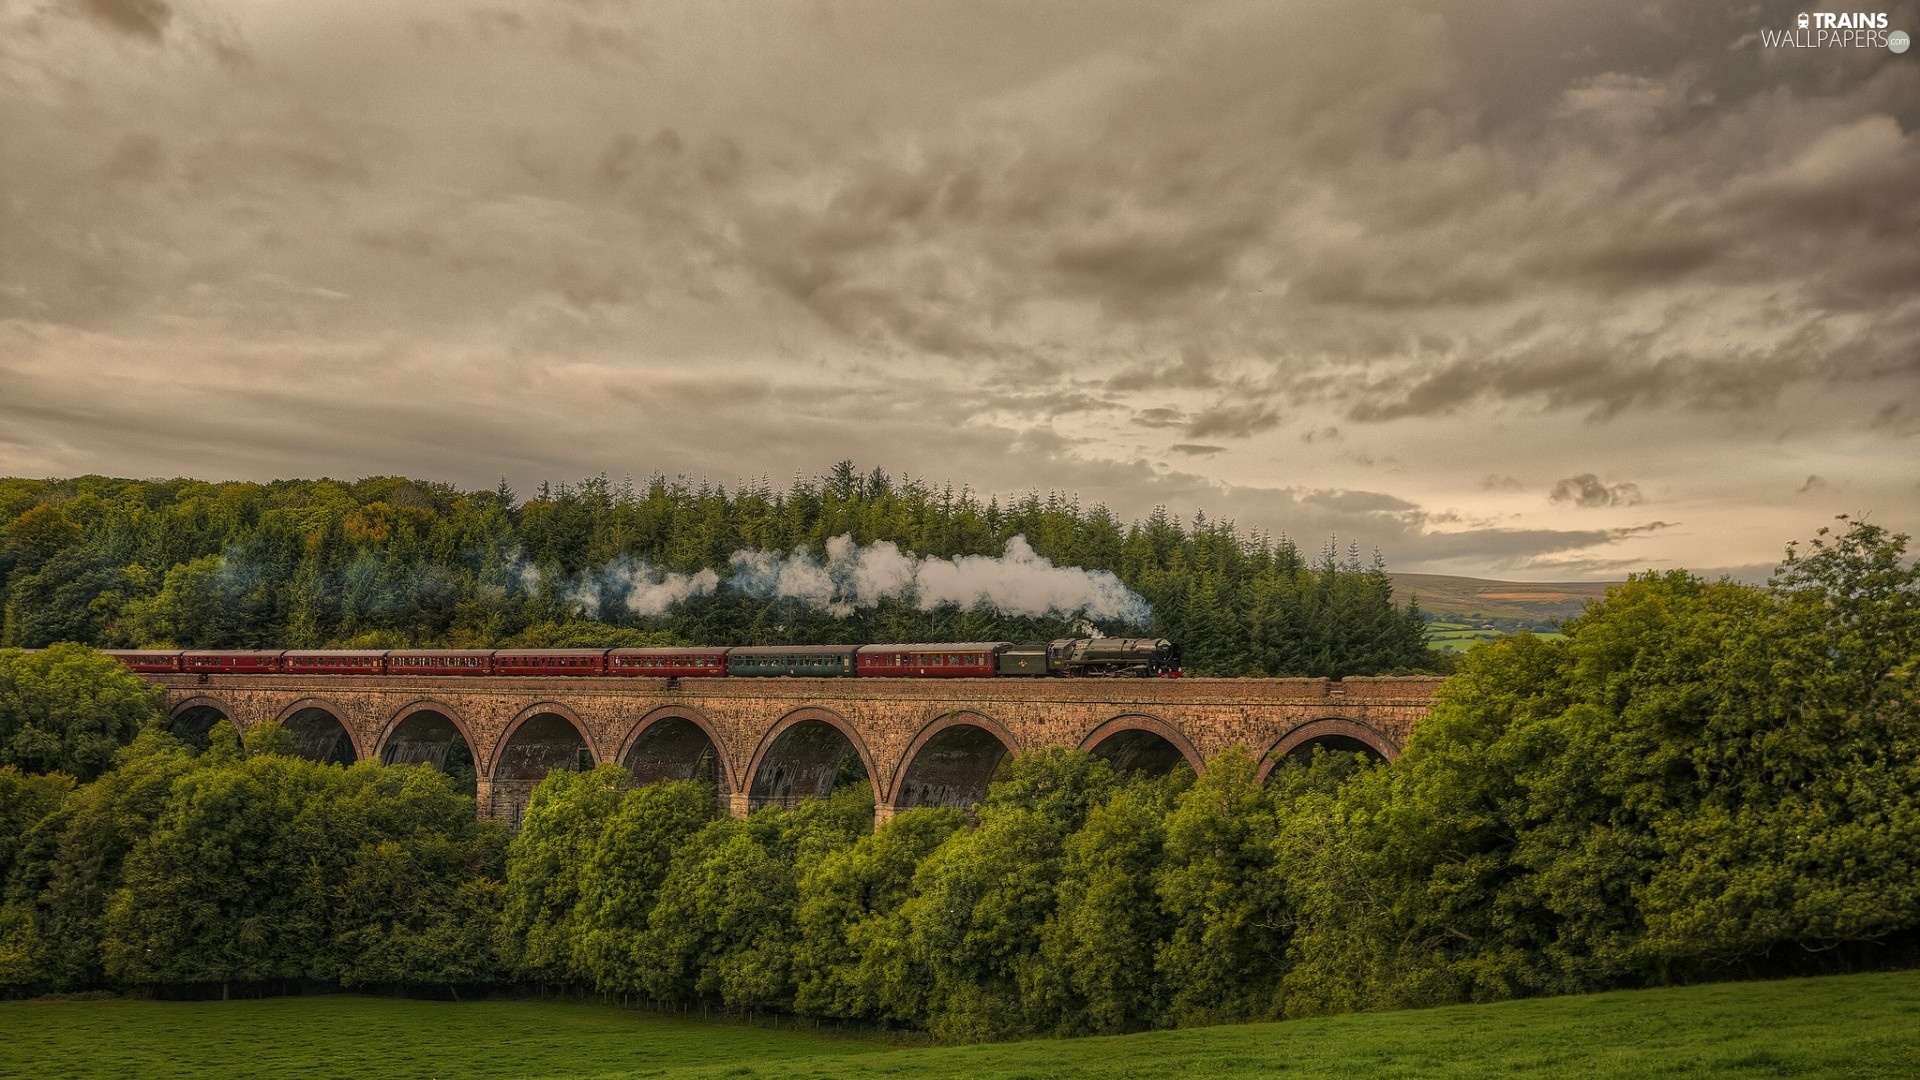 Sky, Train, trees, Clouds, bridge, forest, viewes